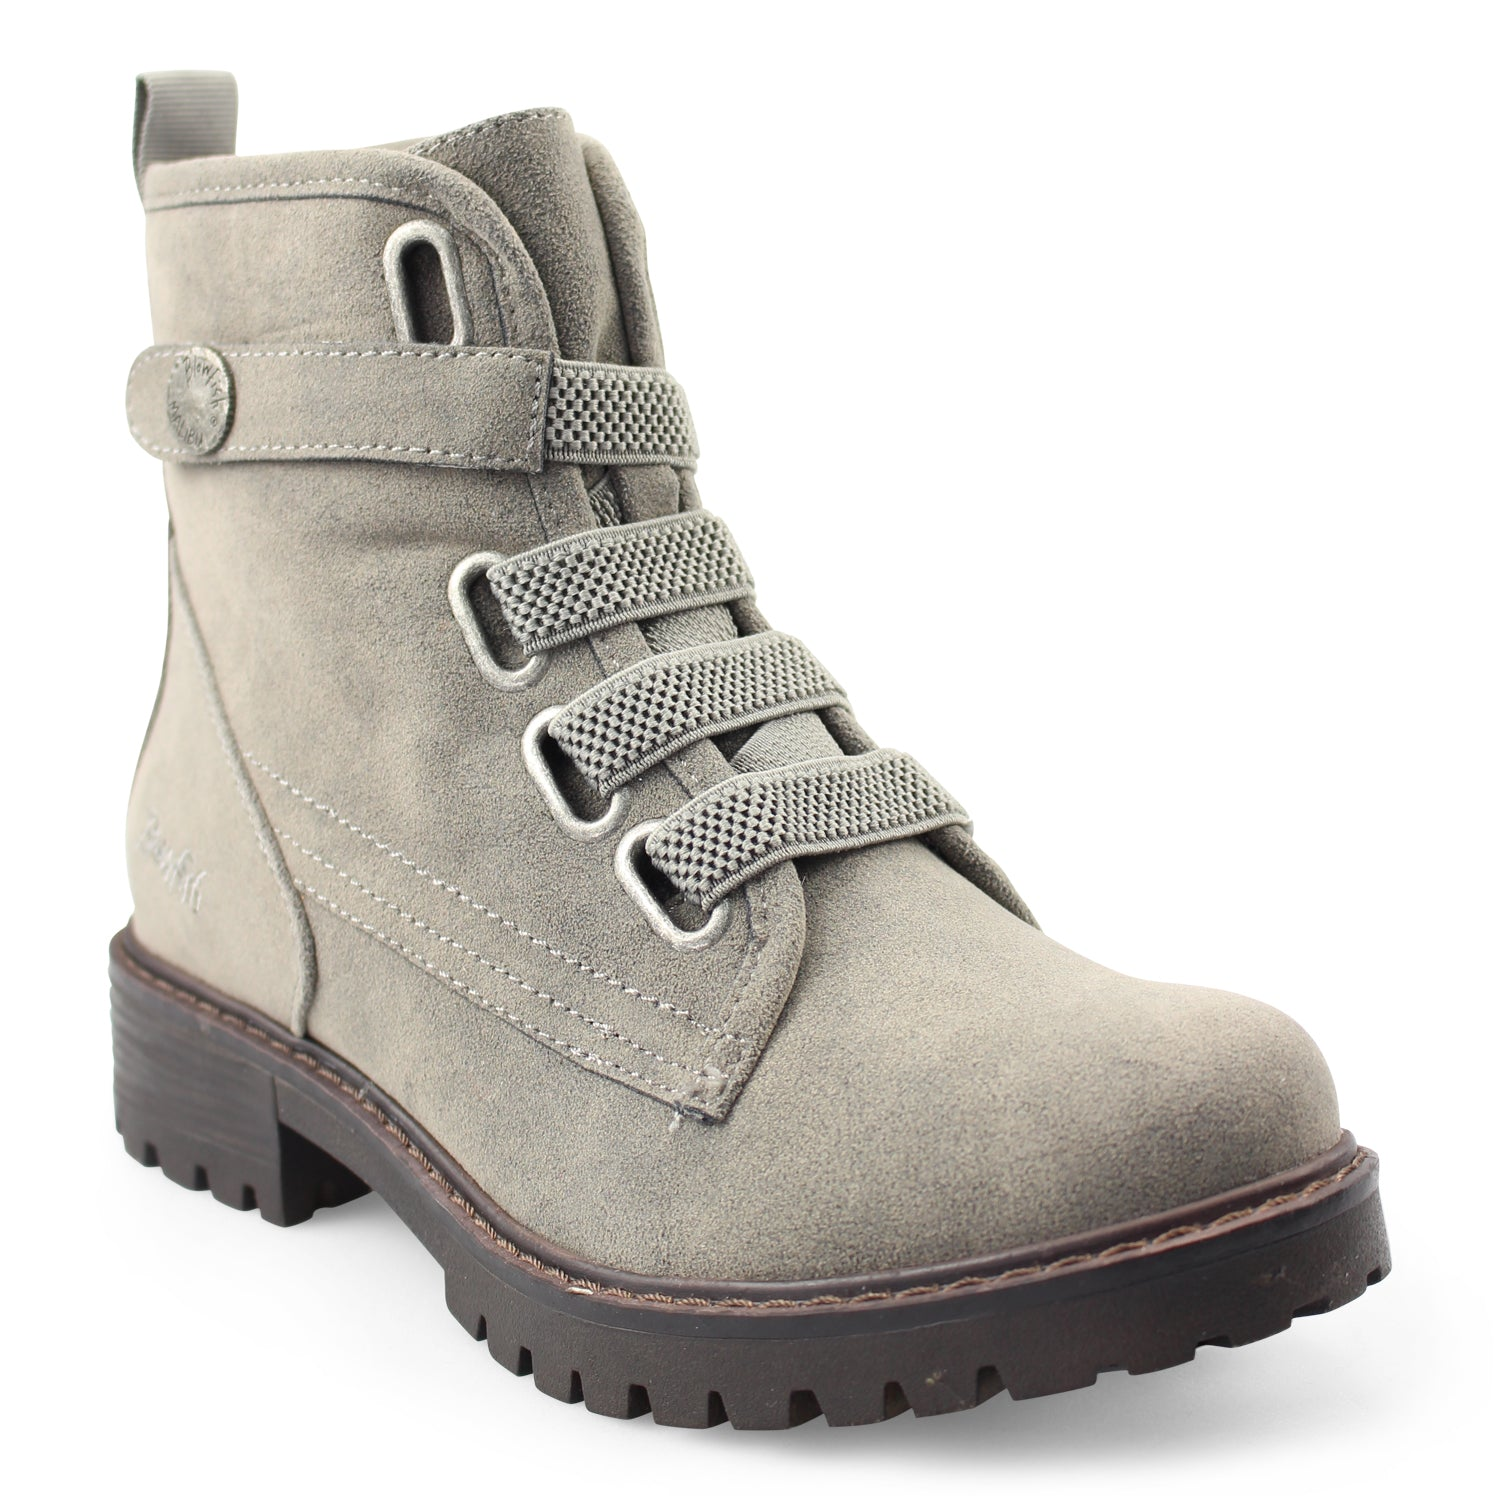 'Blowfish Malibu' BF-8205 001 - Women's Raco Boot - Smoke